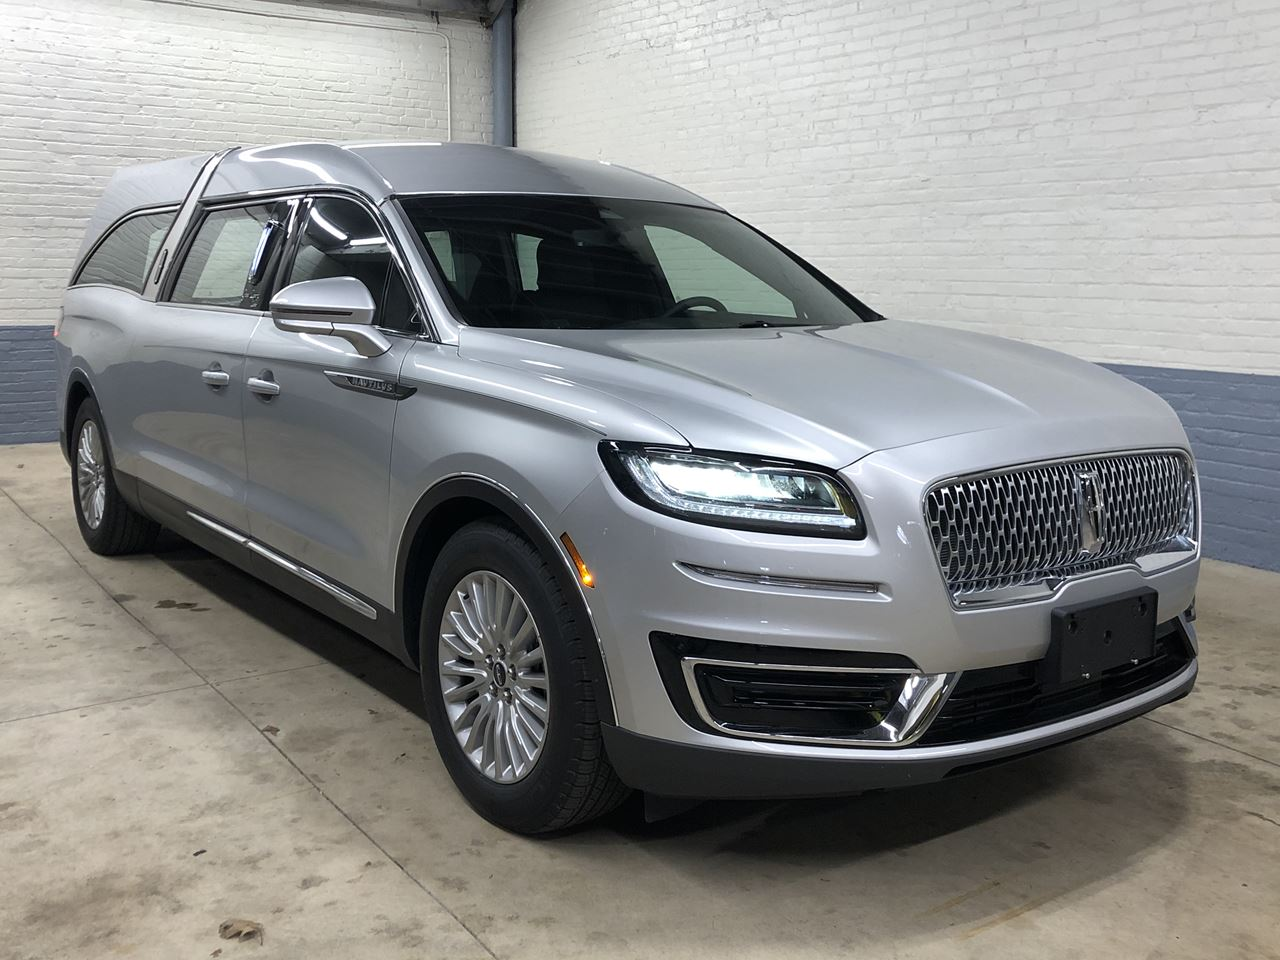 2019 Lincoln Nautilus MK Grand Legacy Limited 322 22